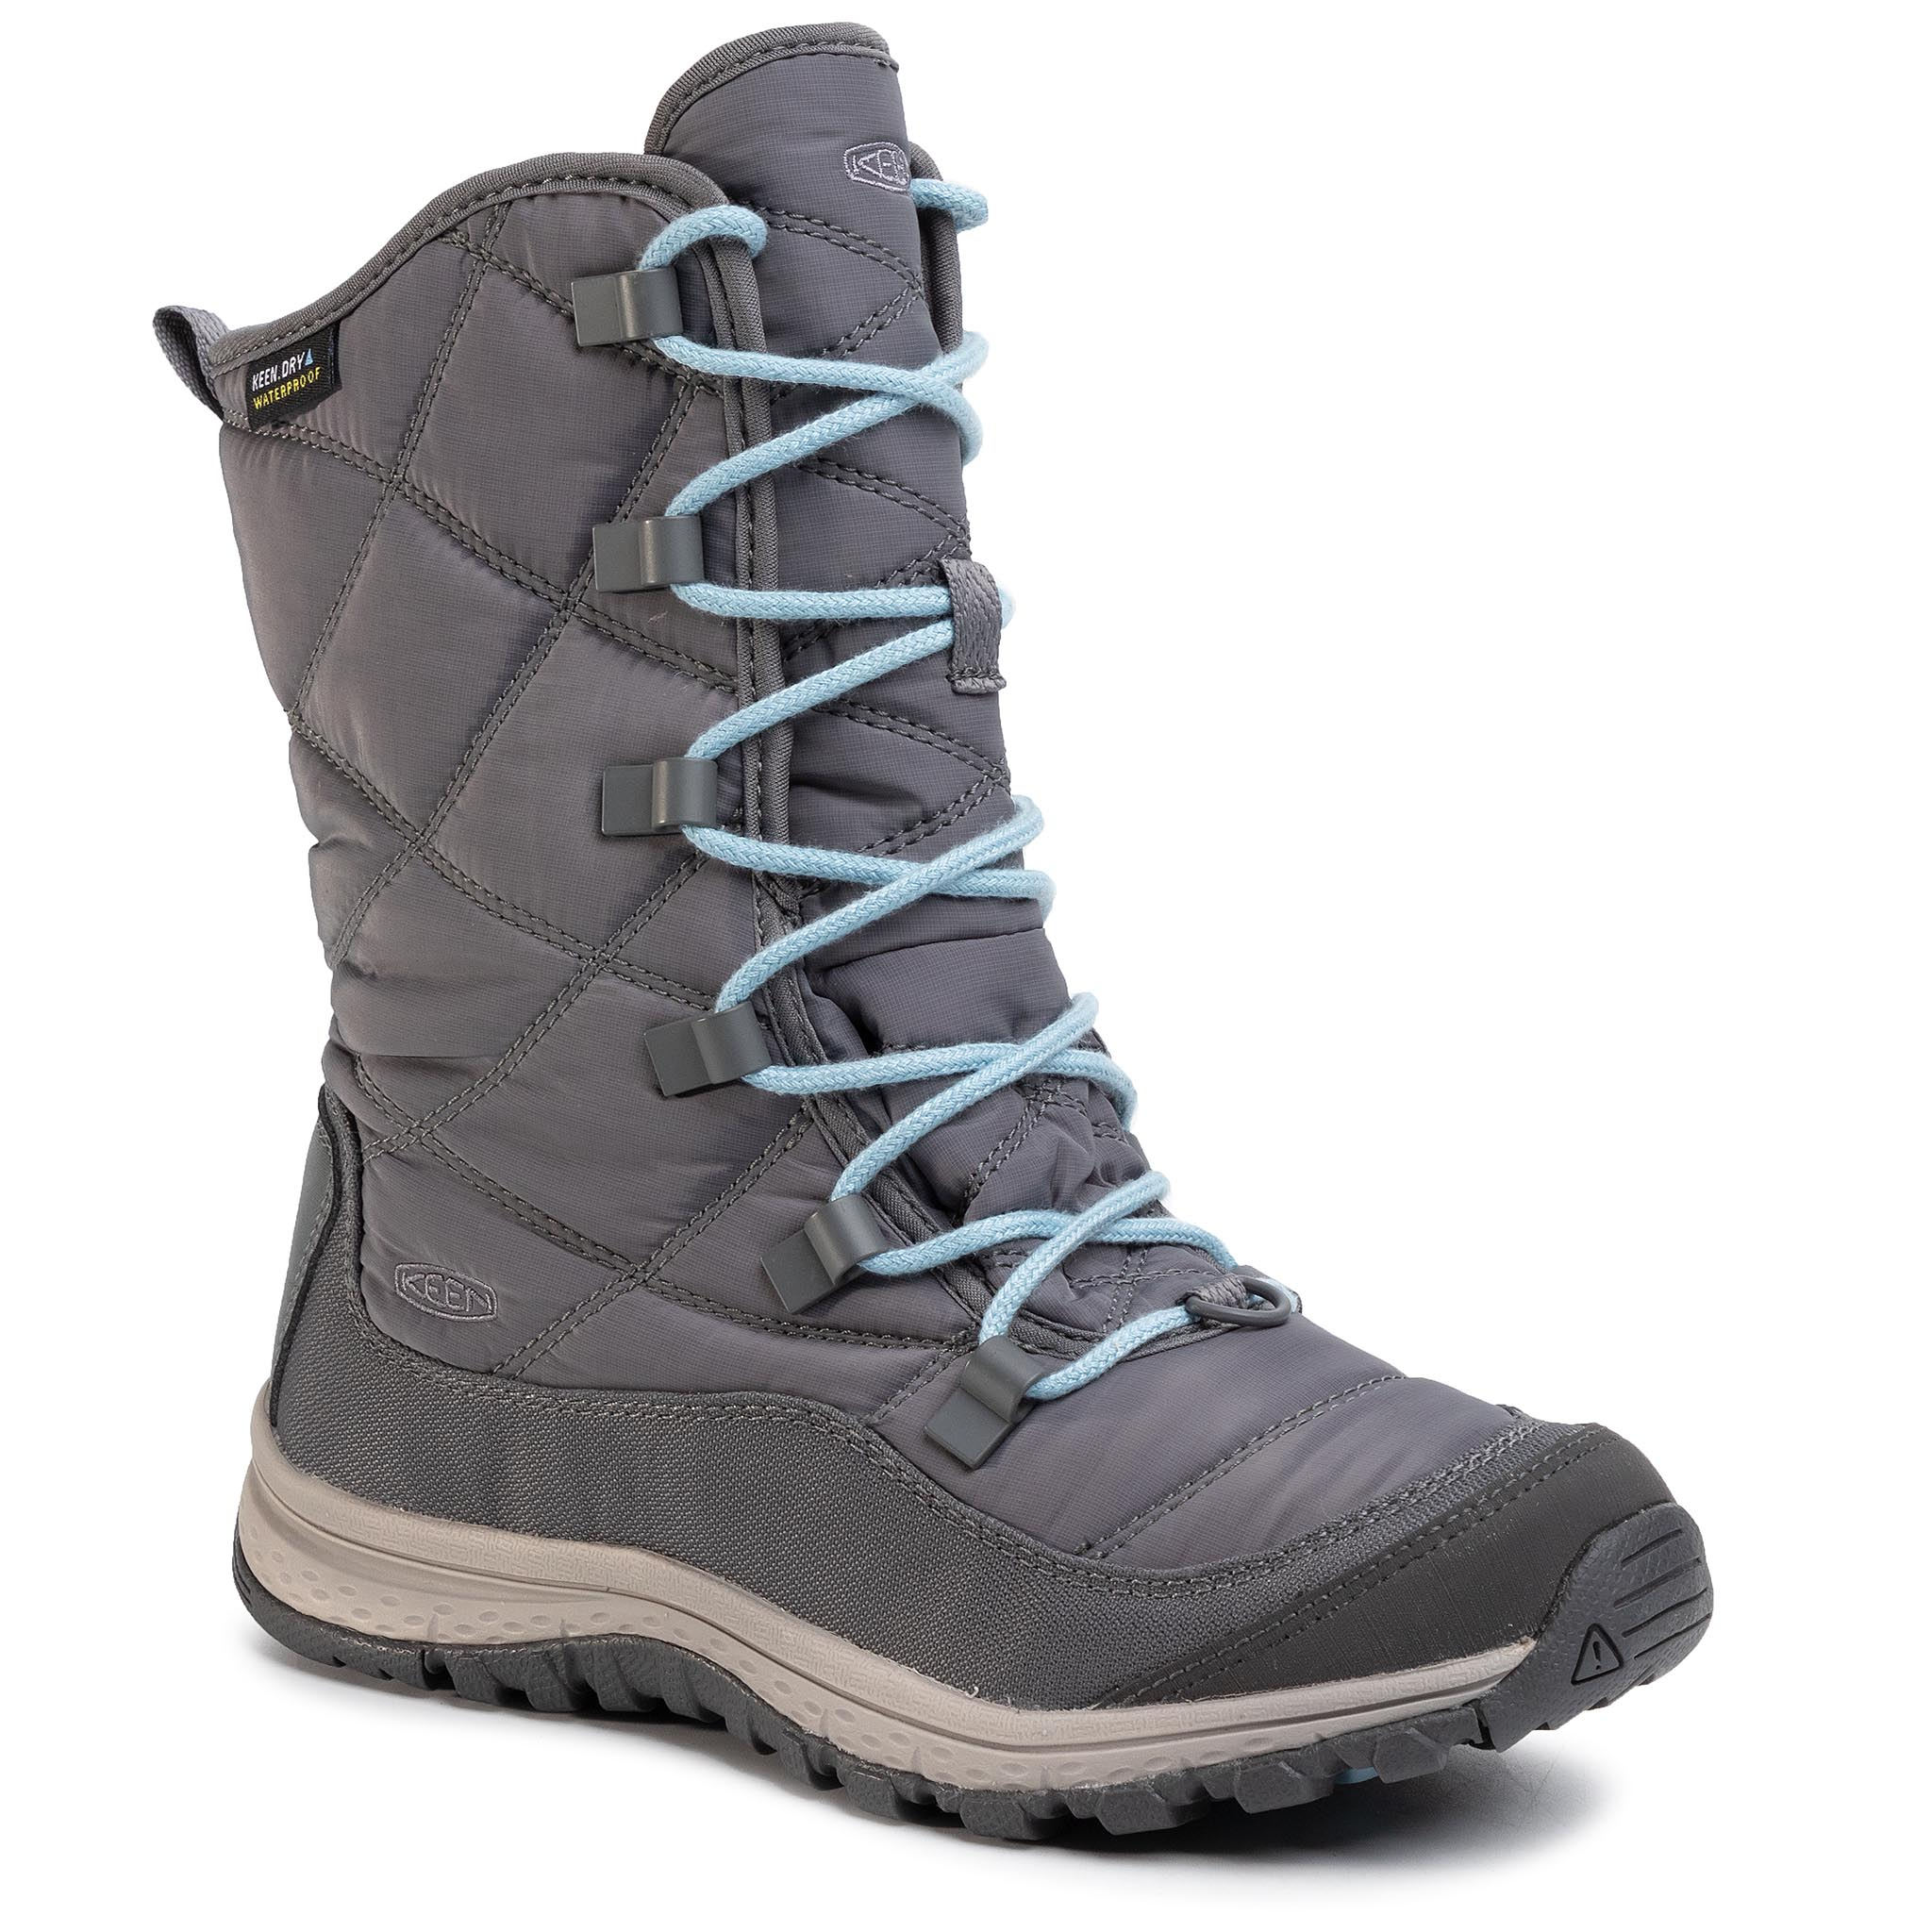 Trekkings Keen - Terradora Lace Boot Wp 1021732 Steel Grey/Forget Me Not imagine epantofi.ro 2021